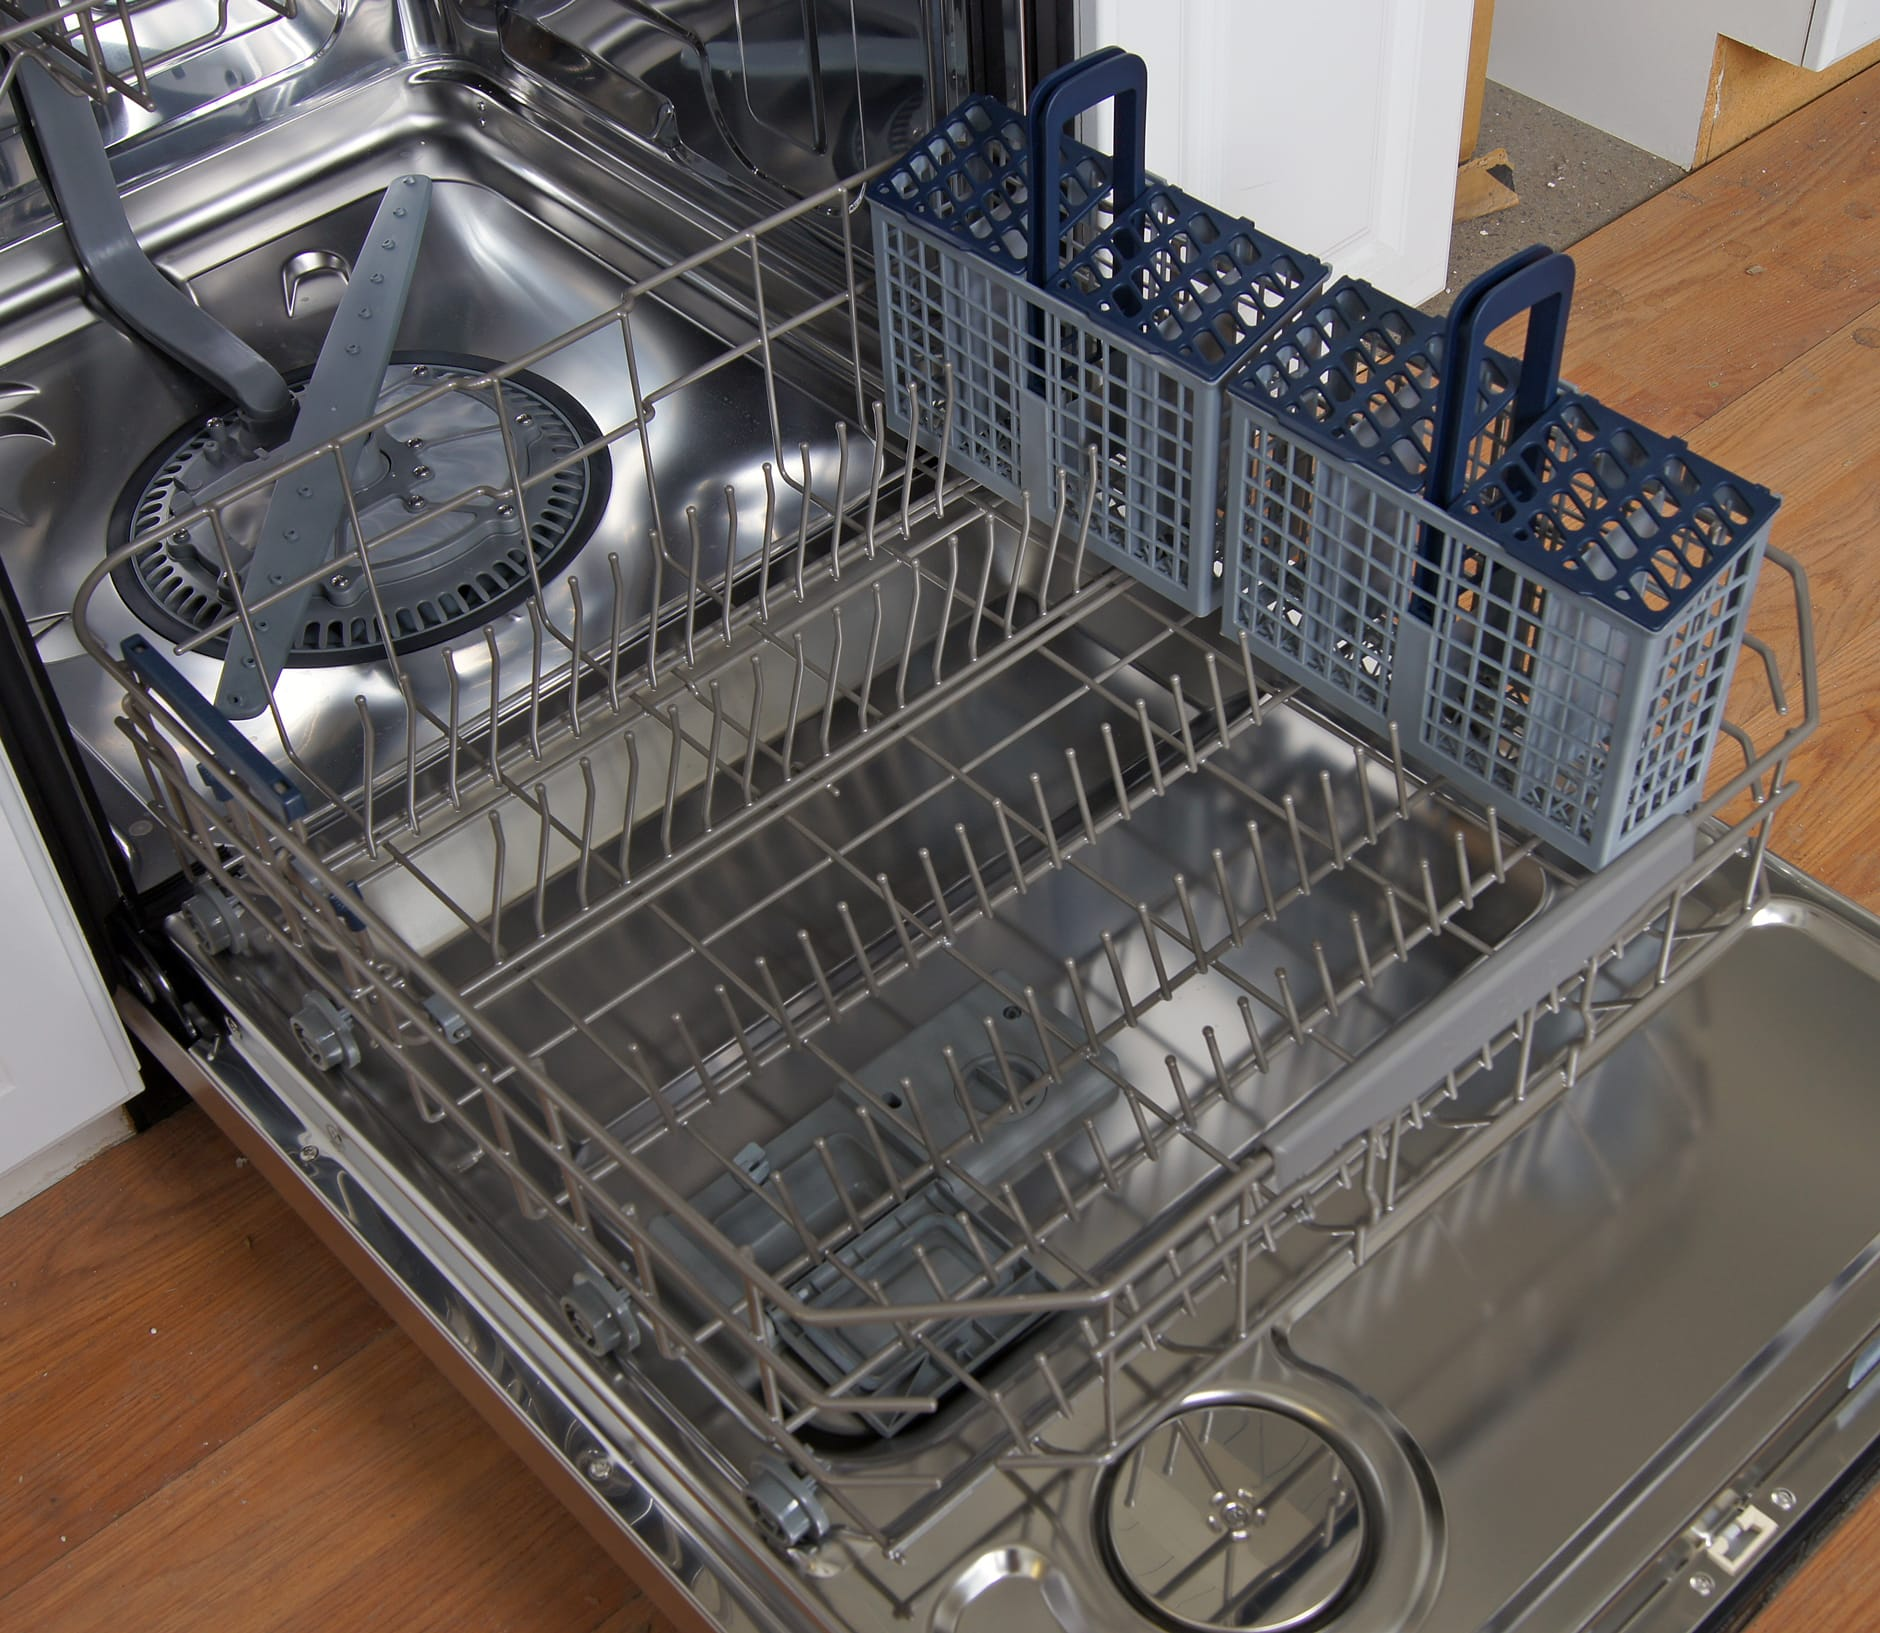 Samsung Dw80f600uts Dishwasher Review Reviewed Com